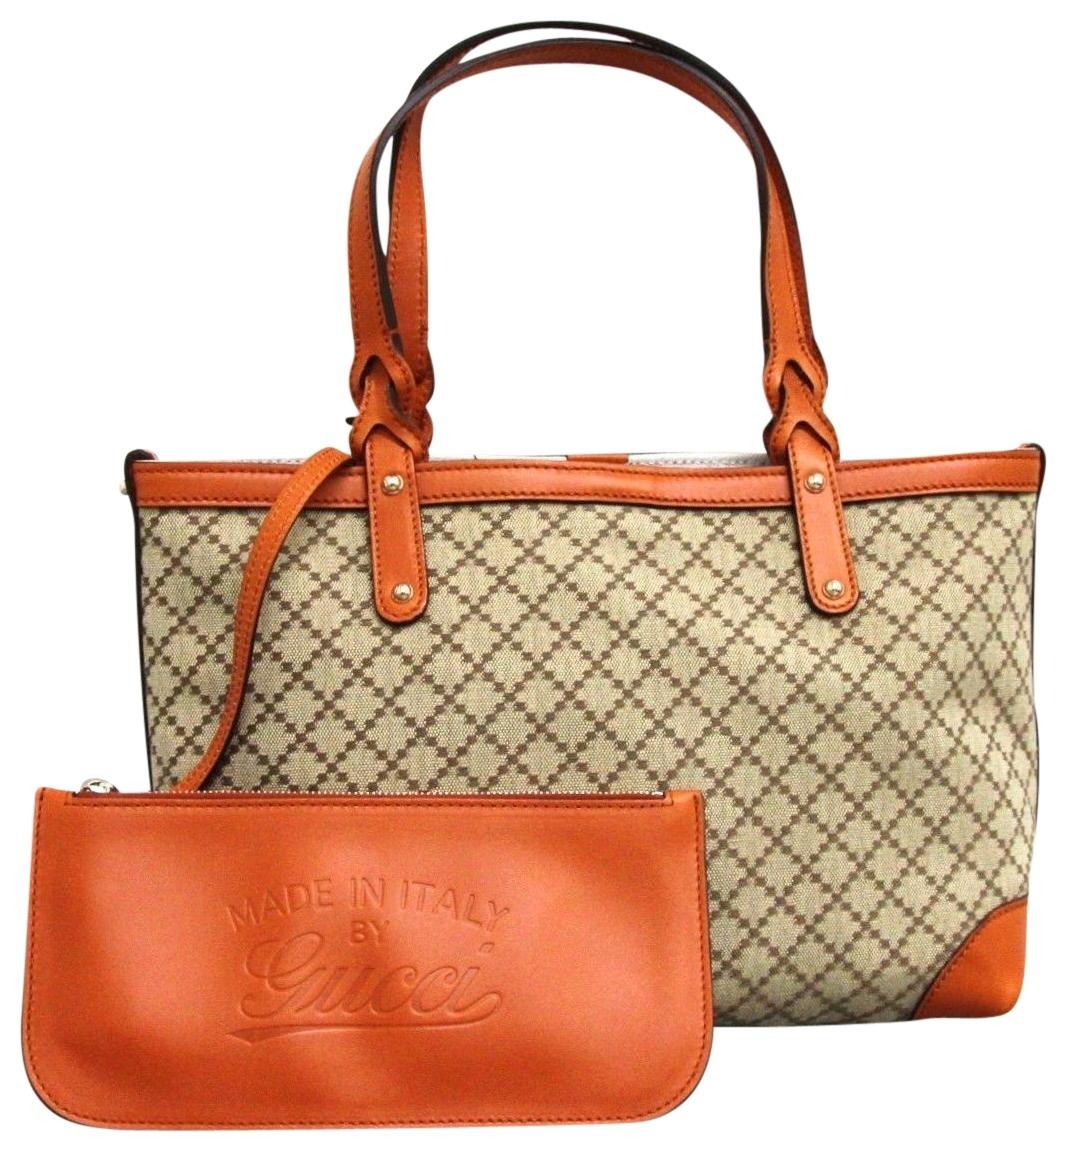 gucci bags on sale. gucci craft diamante canvas tote in beige bags on sale